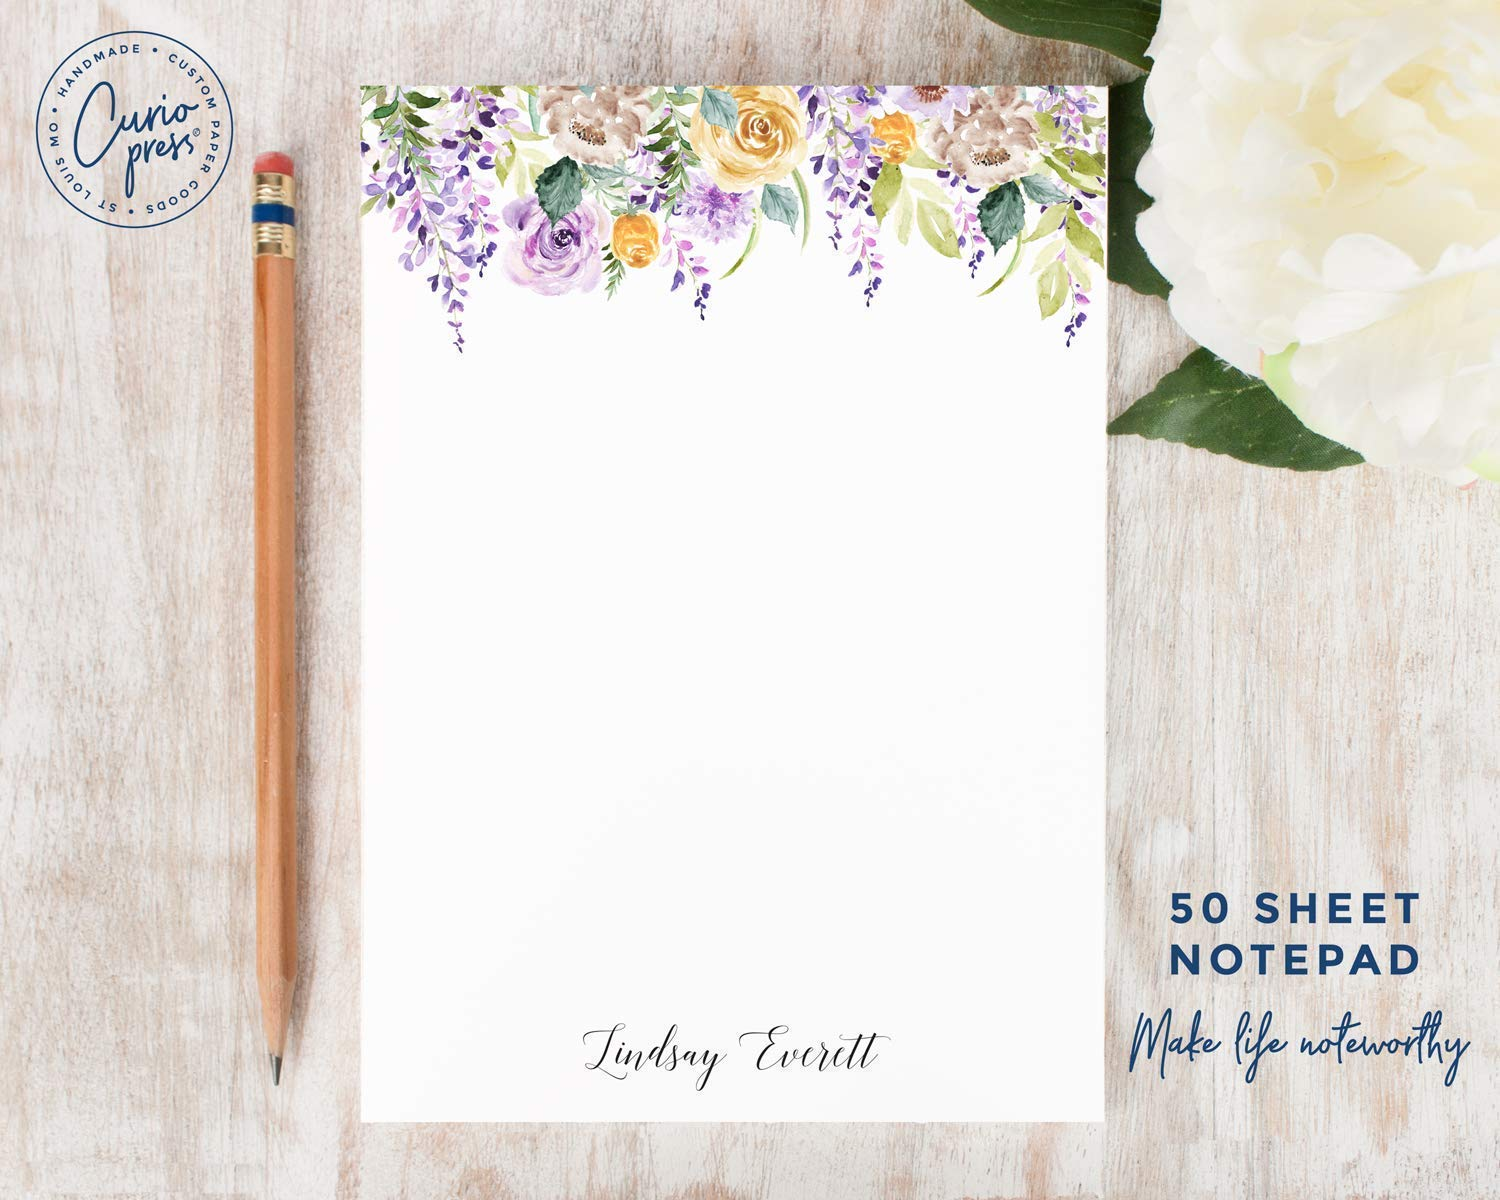 Purple Flowers Notepad Personalized Floral Stationery Stationary 5x7 Or 8x10 Note Pad Stationery Surclima Handmade Products